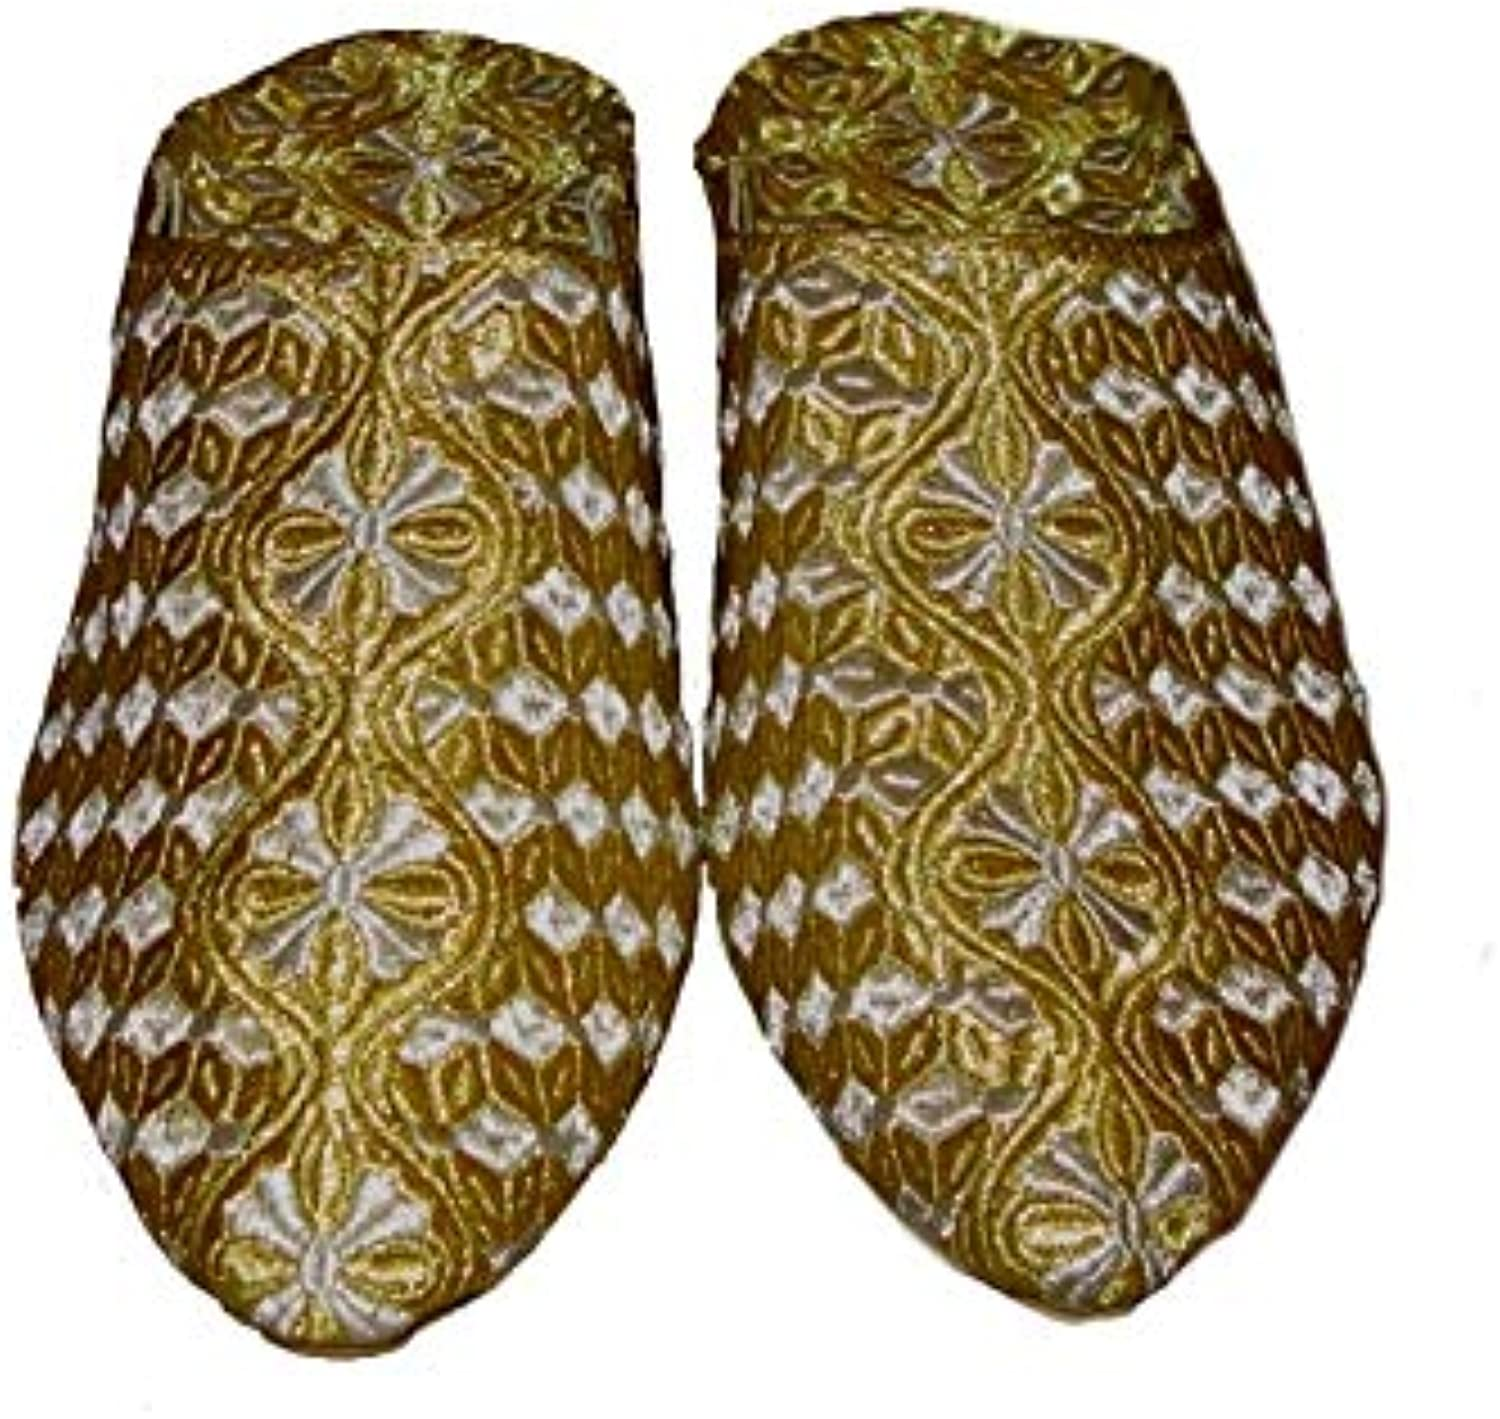 Le Marrakech Store Babouches Slippers, Babouches shoes, Women Babouches